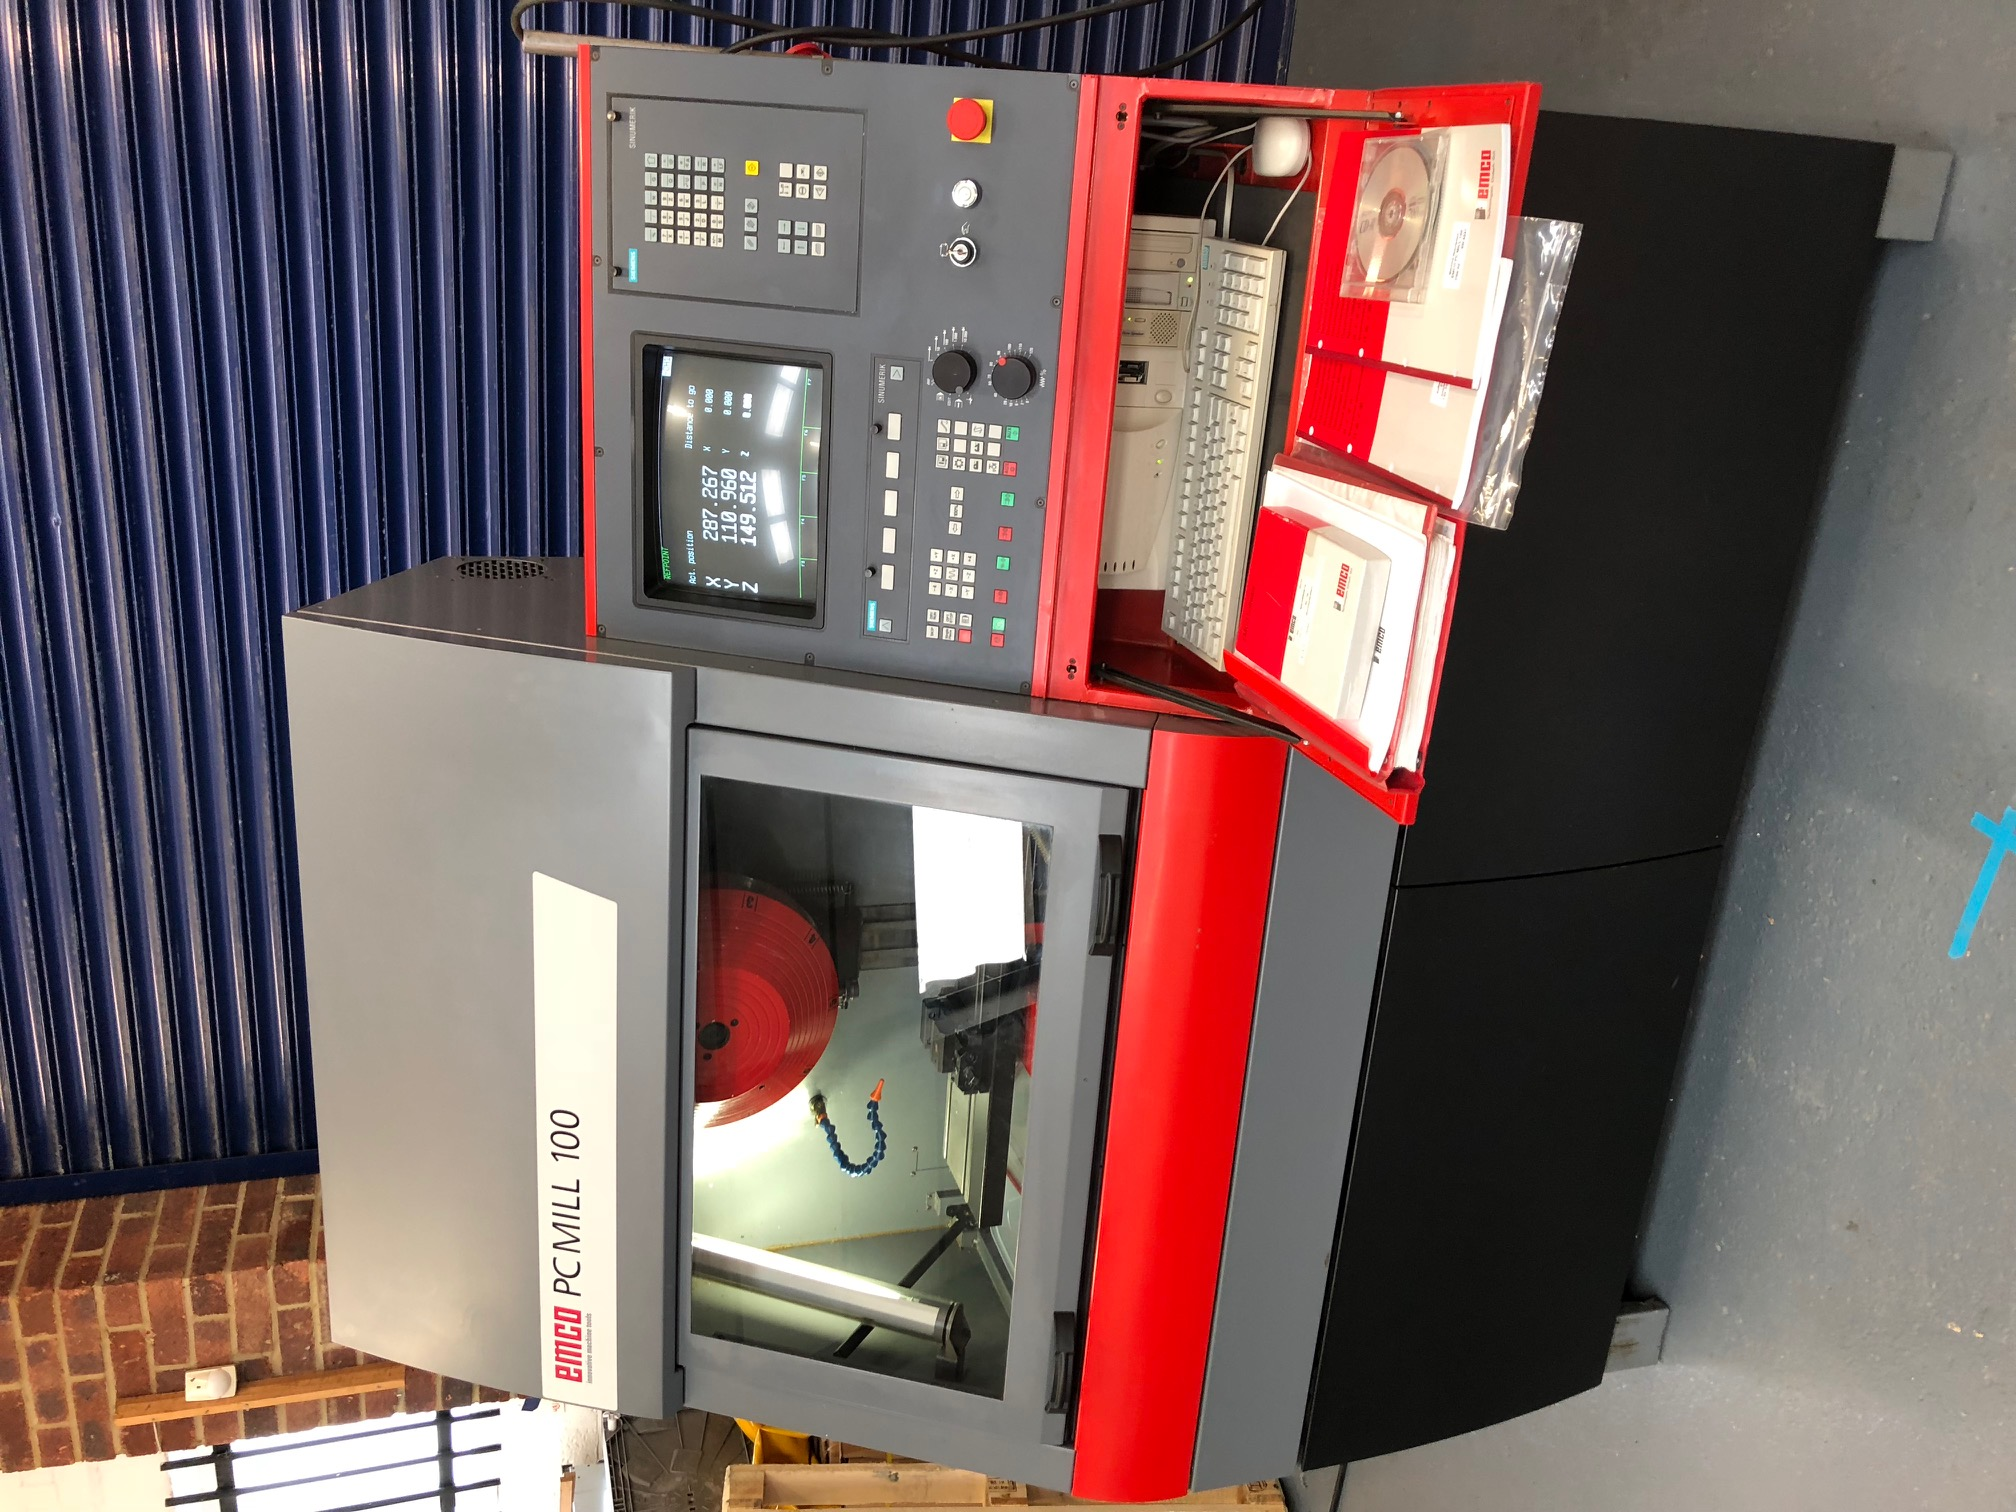 FOR SALE: FOR SALE Emco Pc Mill100 CNC milling machine, as new condition